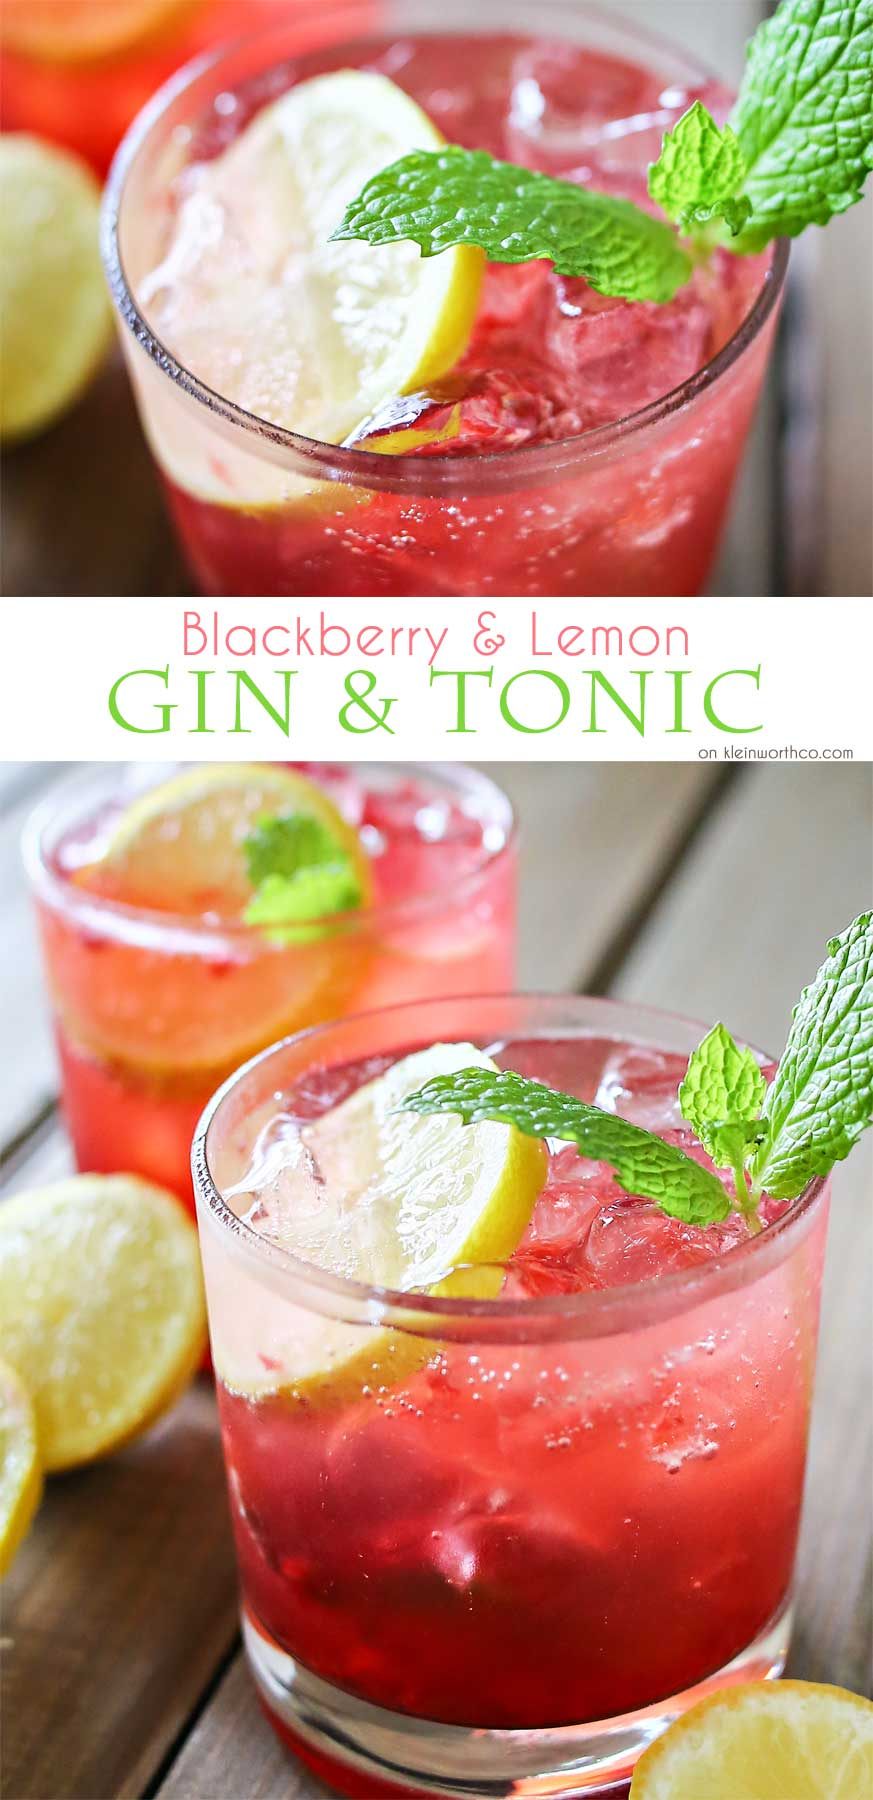 Blackberry Lemon Gin & Tonic is one of our favorite mixed drinks. It'...